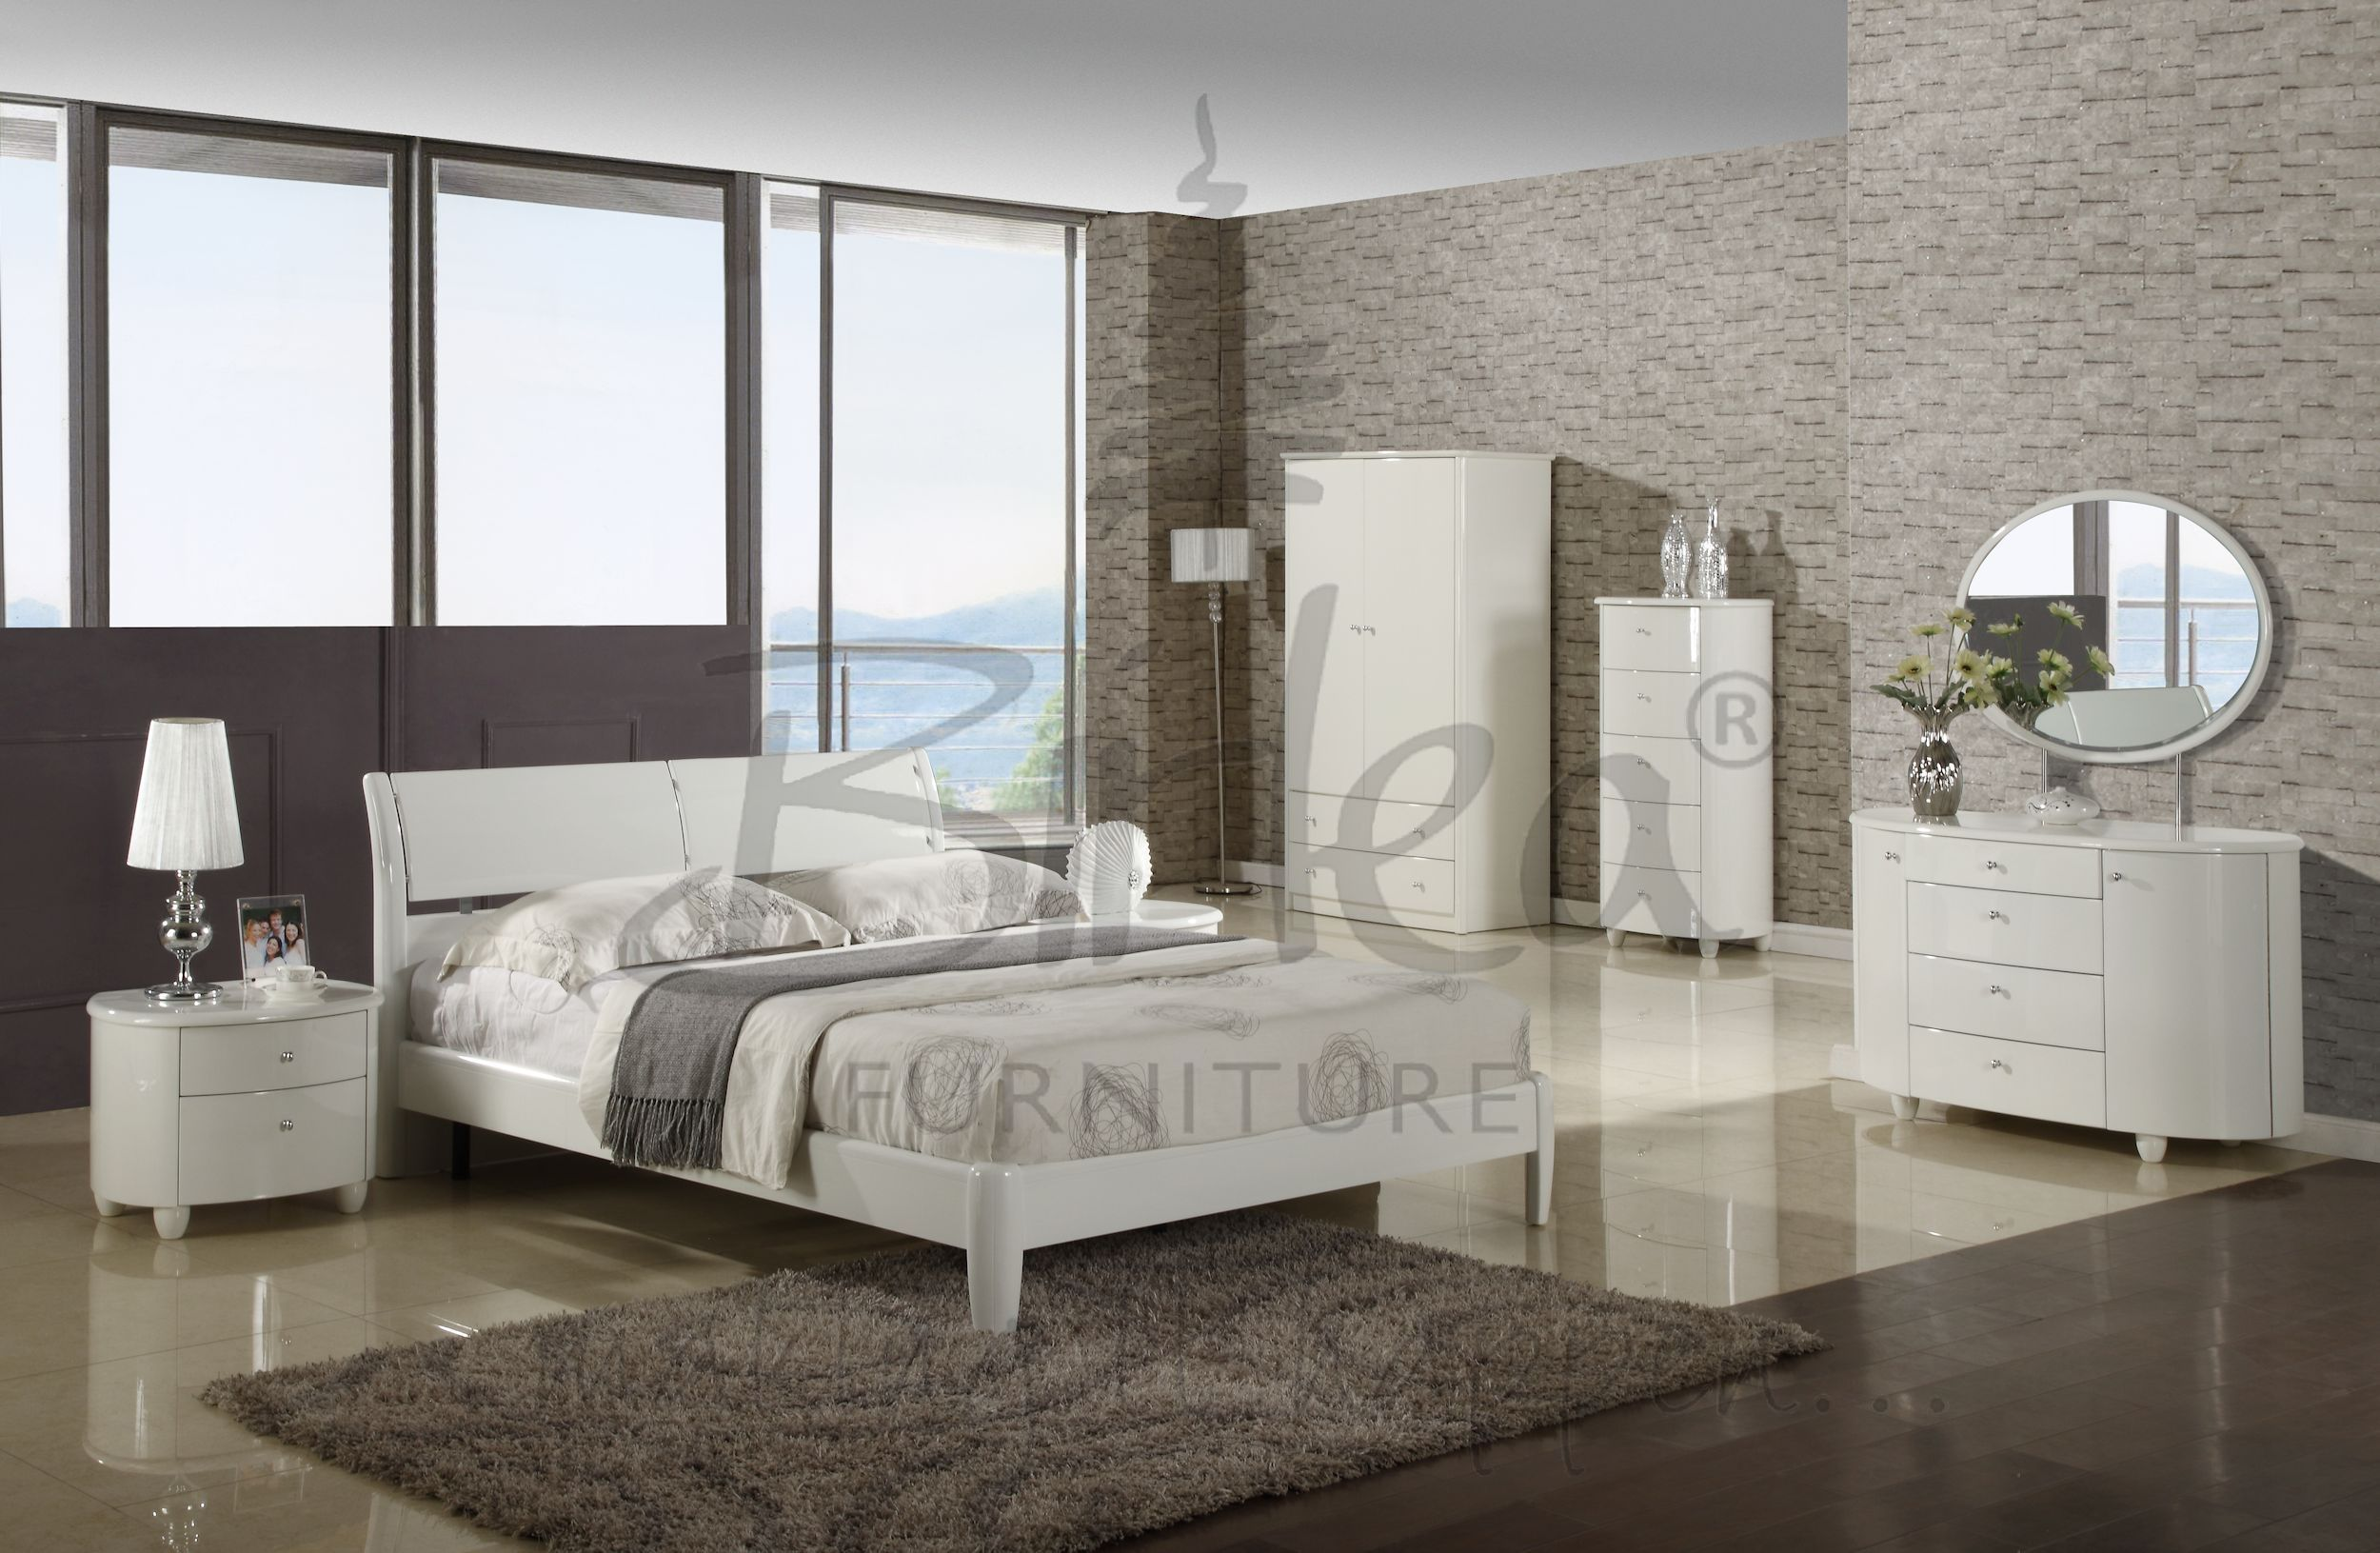 Our aztec white bedroom range is the perfect colour palette for your